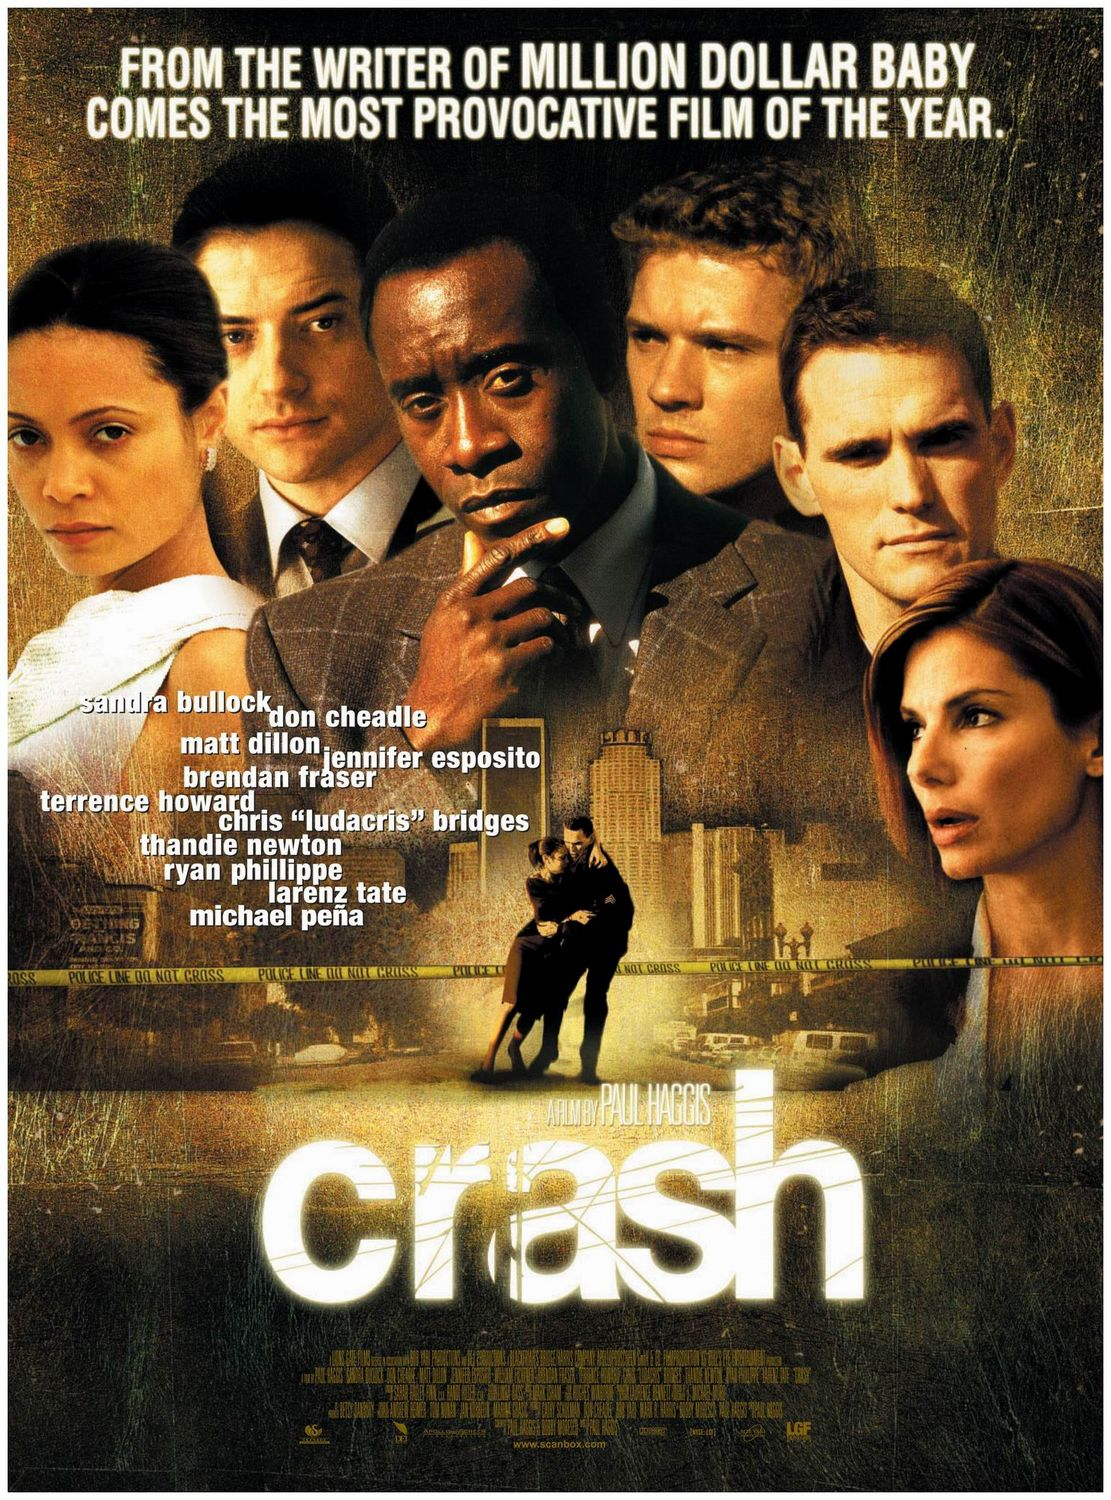 crash essay movie racial stereotype 91 121 113 106 crash essay movie racial stereotype